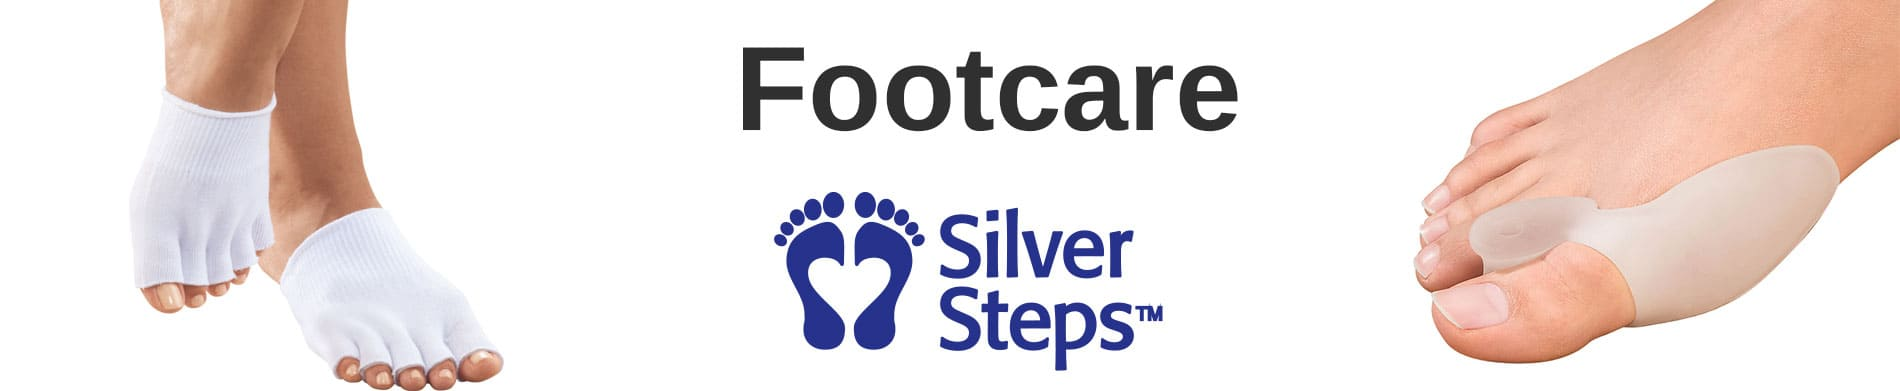 Foot Care by Silver Steps